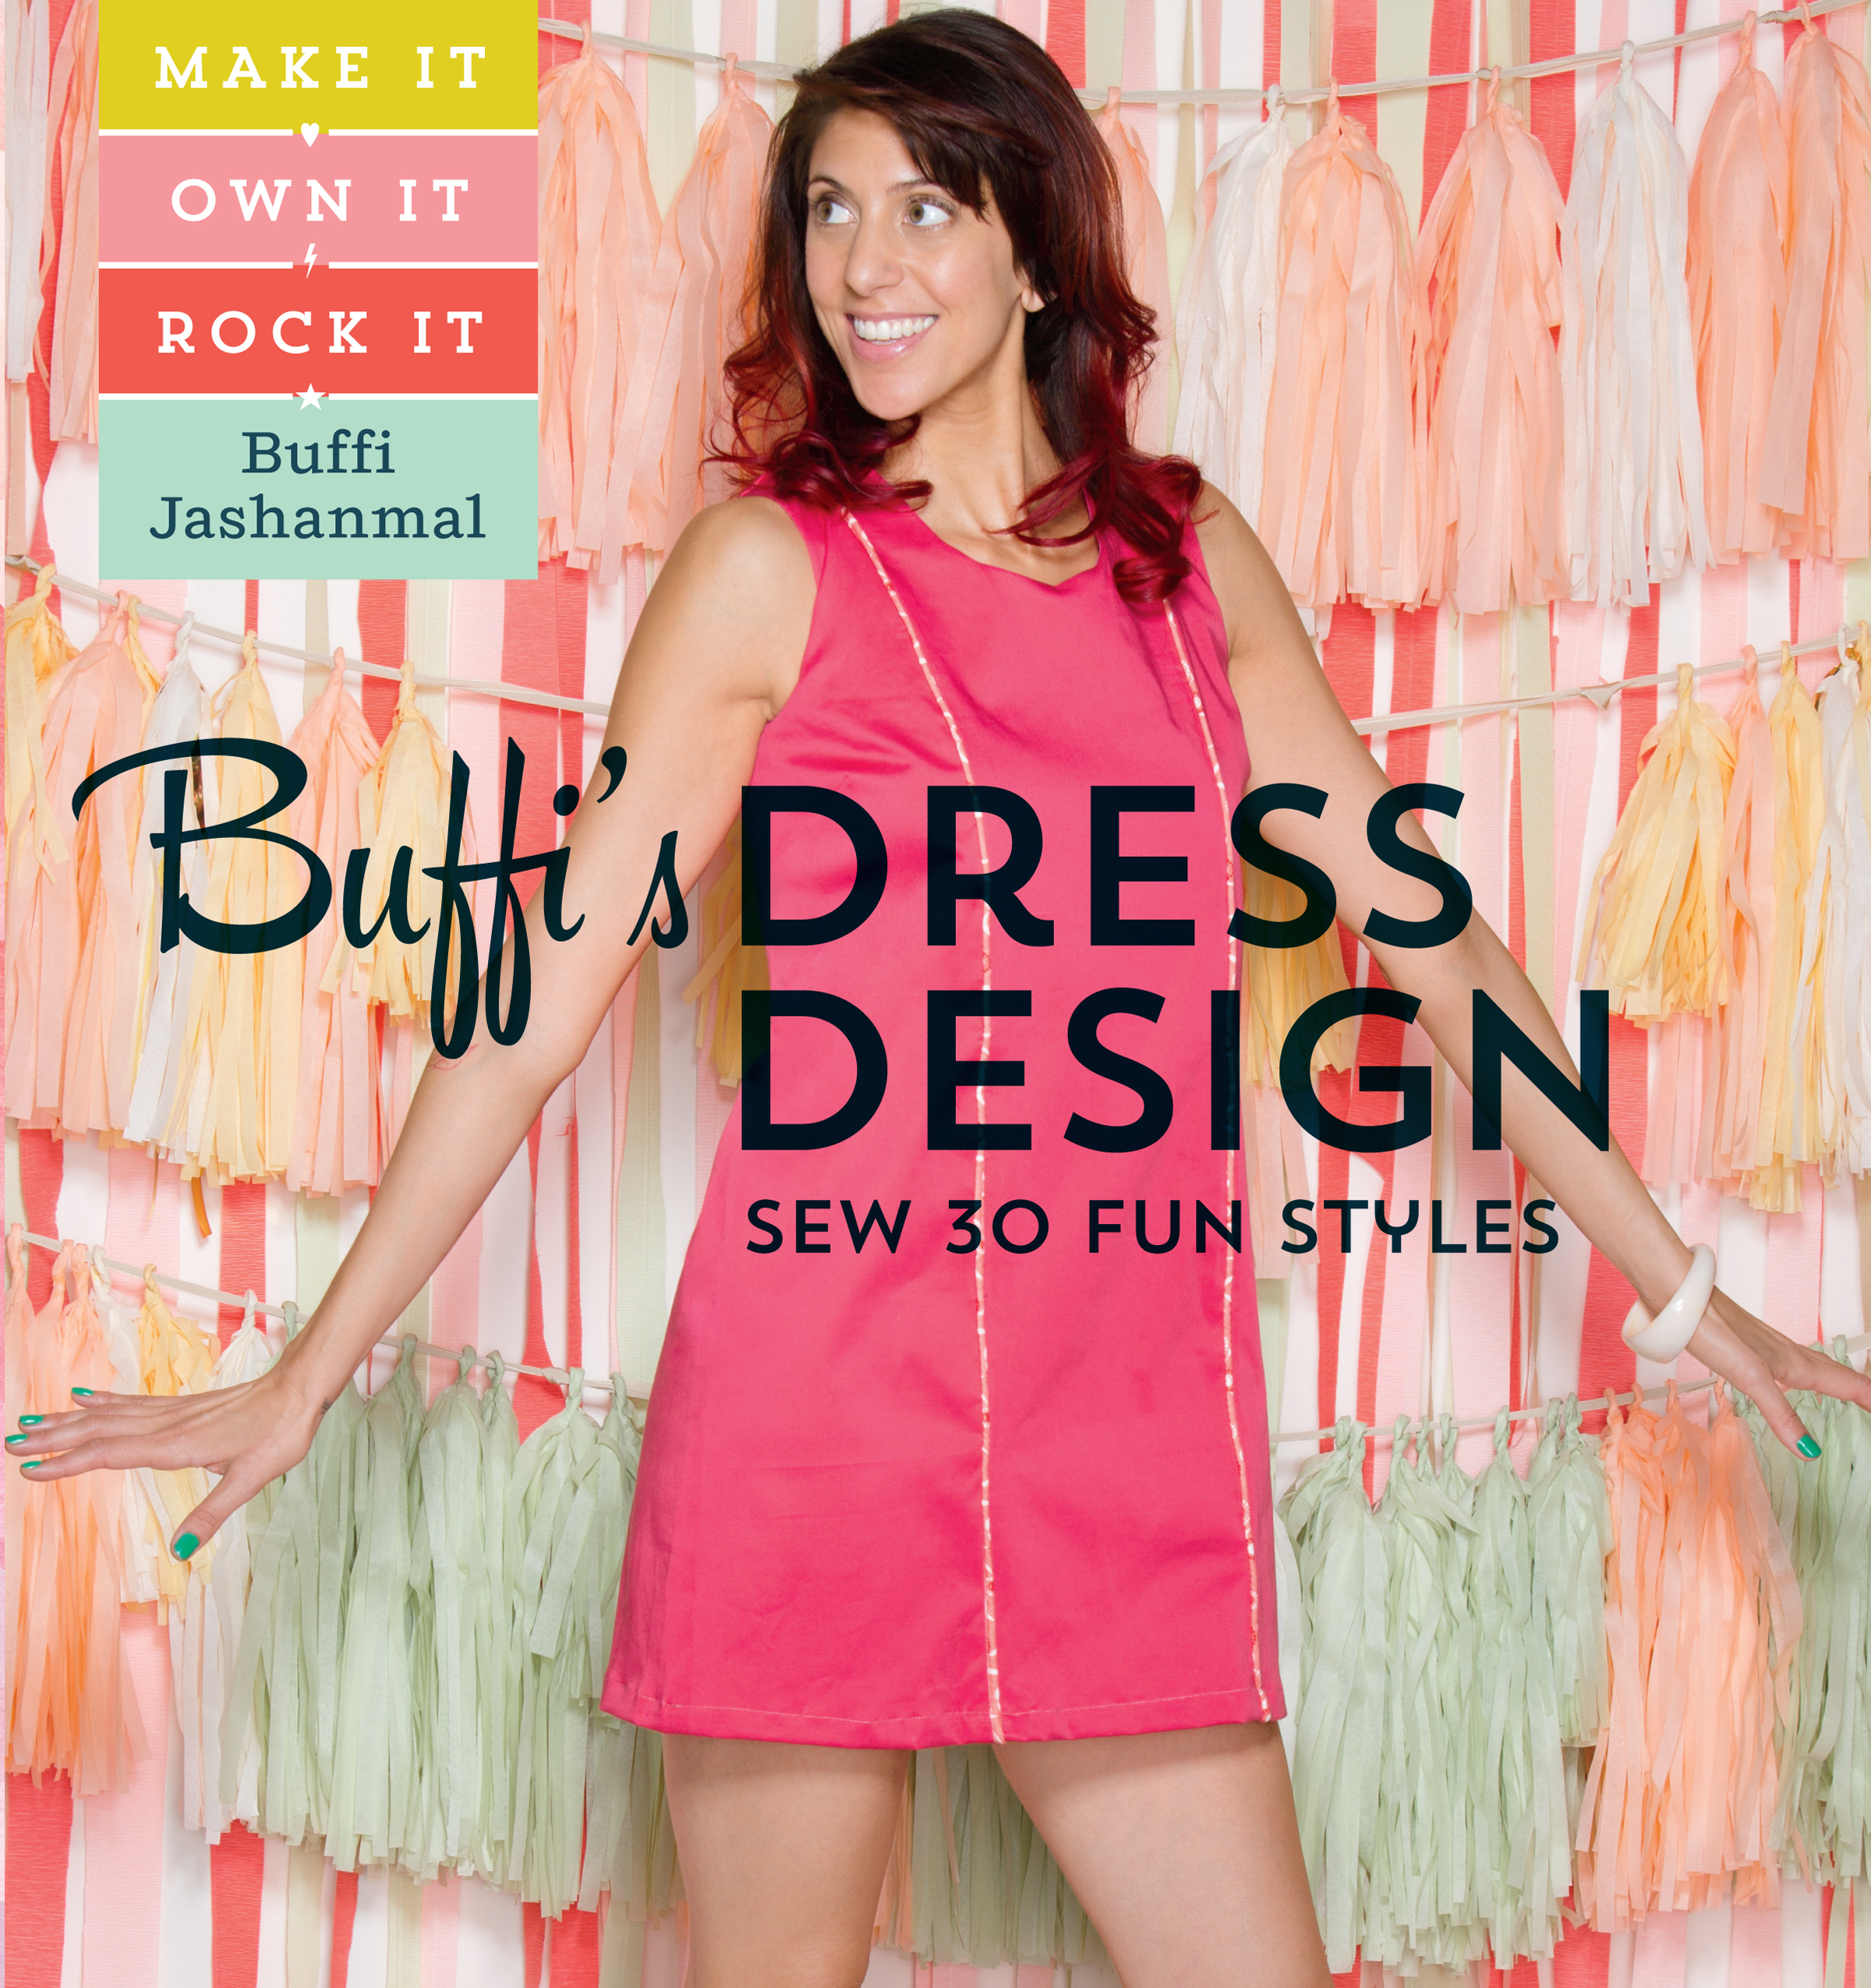 Buffi's Dress Design: Sew 30 Fun Styles Make It, Own It, Rock It - Buffi Jashanmal